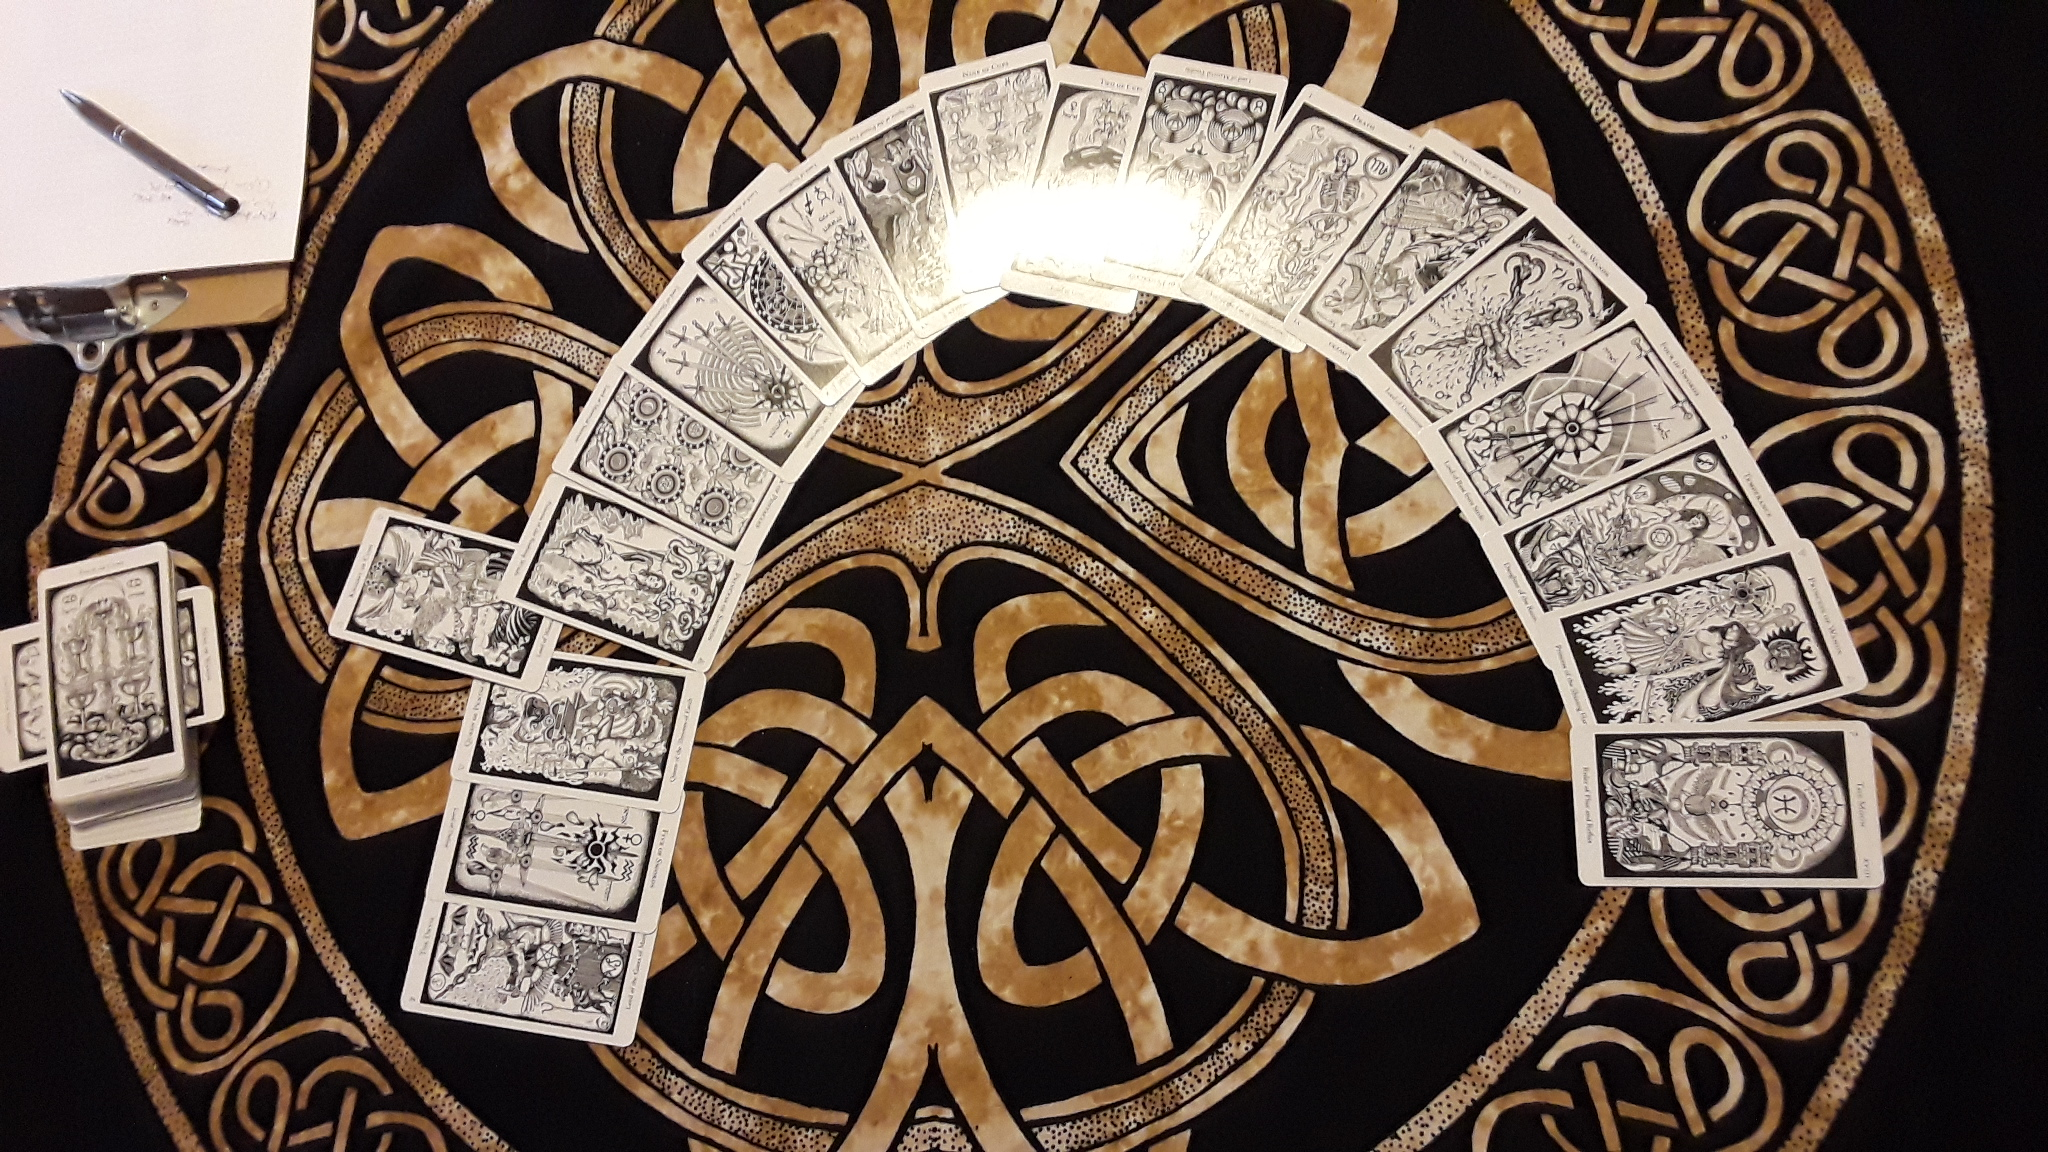 The esoteric correspondences of the black and white Hermetic Tarot offer helpful if odd tarot associations.